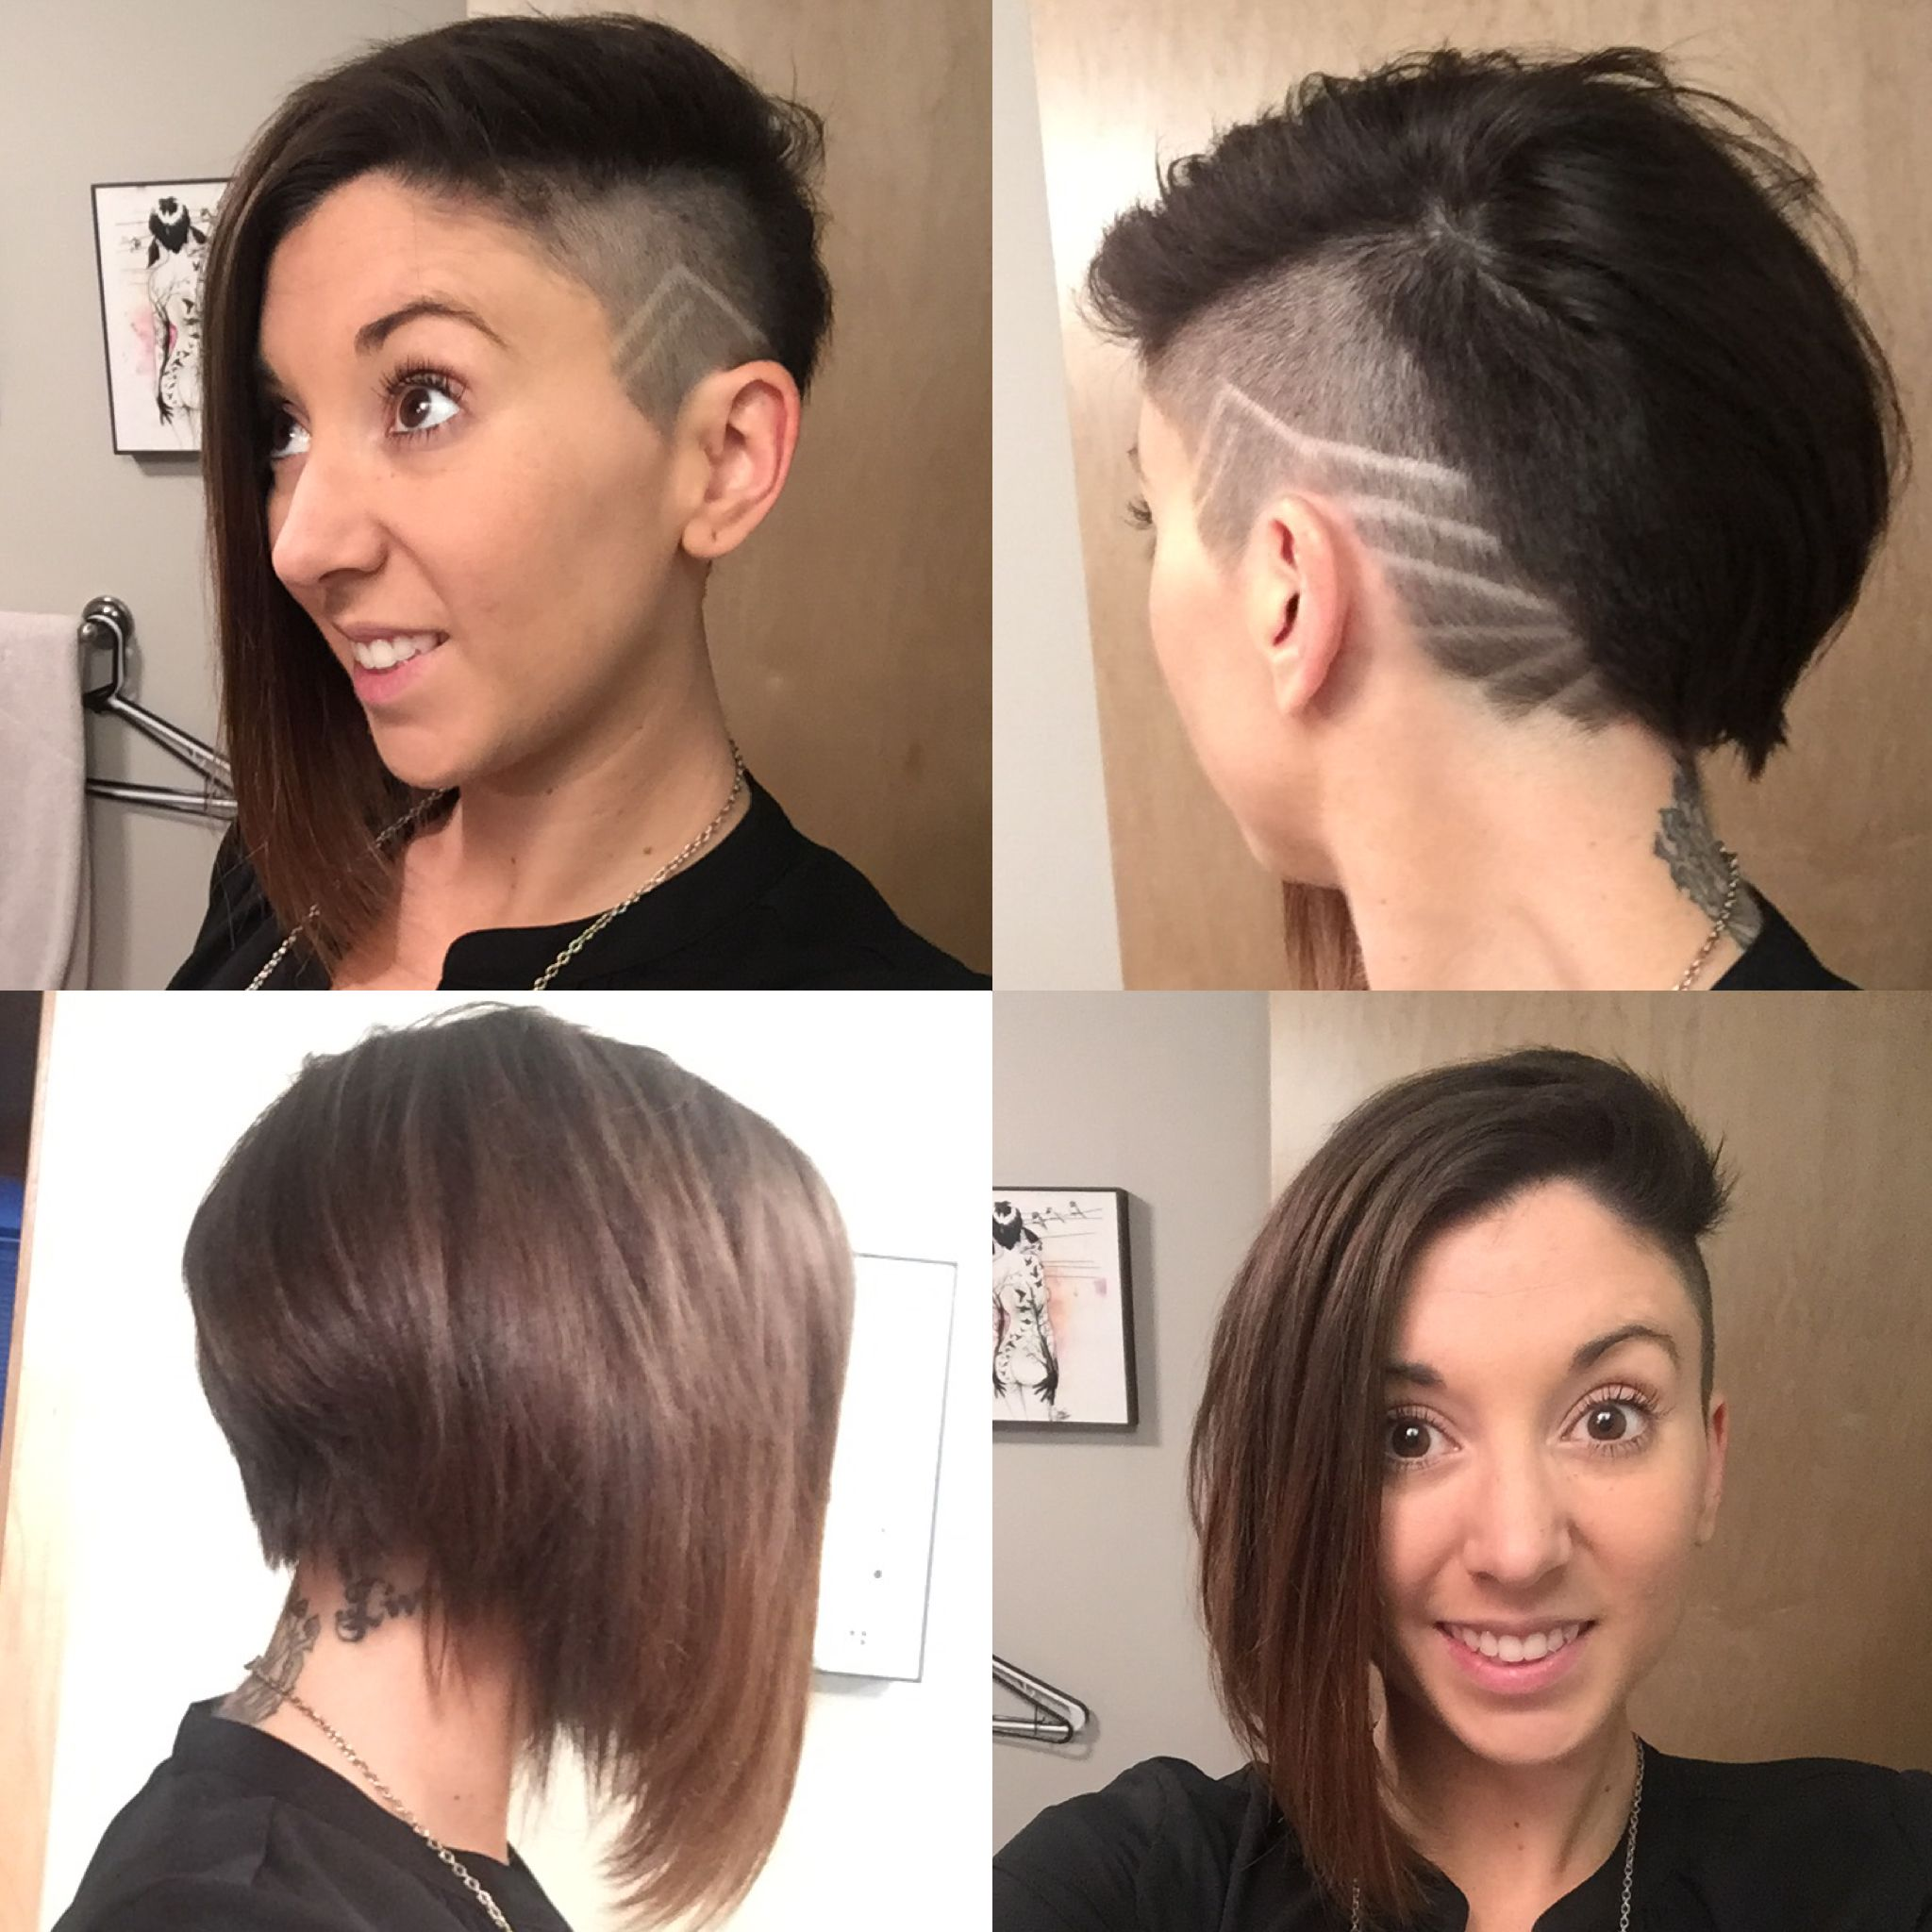 Hairstyle Shaved Side With Design And Angled Bob Hairstyles